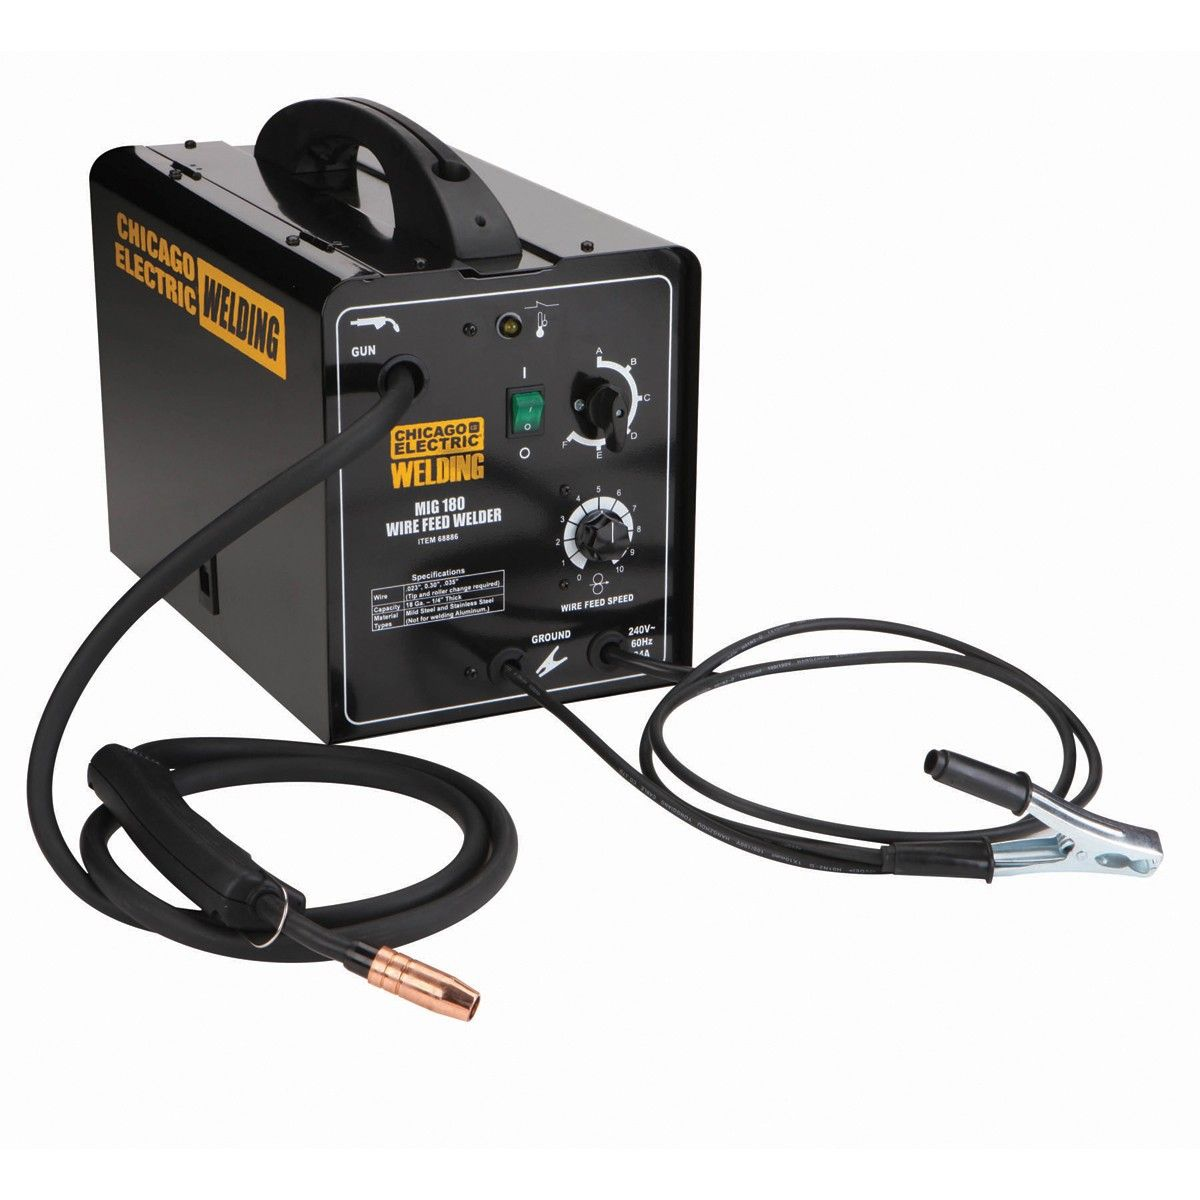 Harbor Freight - 180 Amp MIG/Flux Wire Feed Welder - under